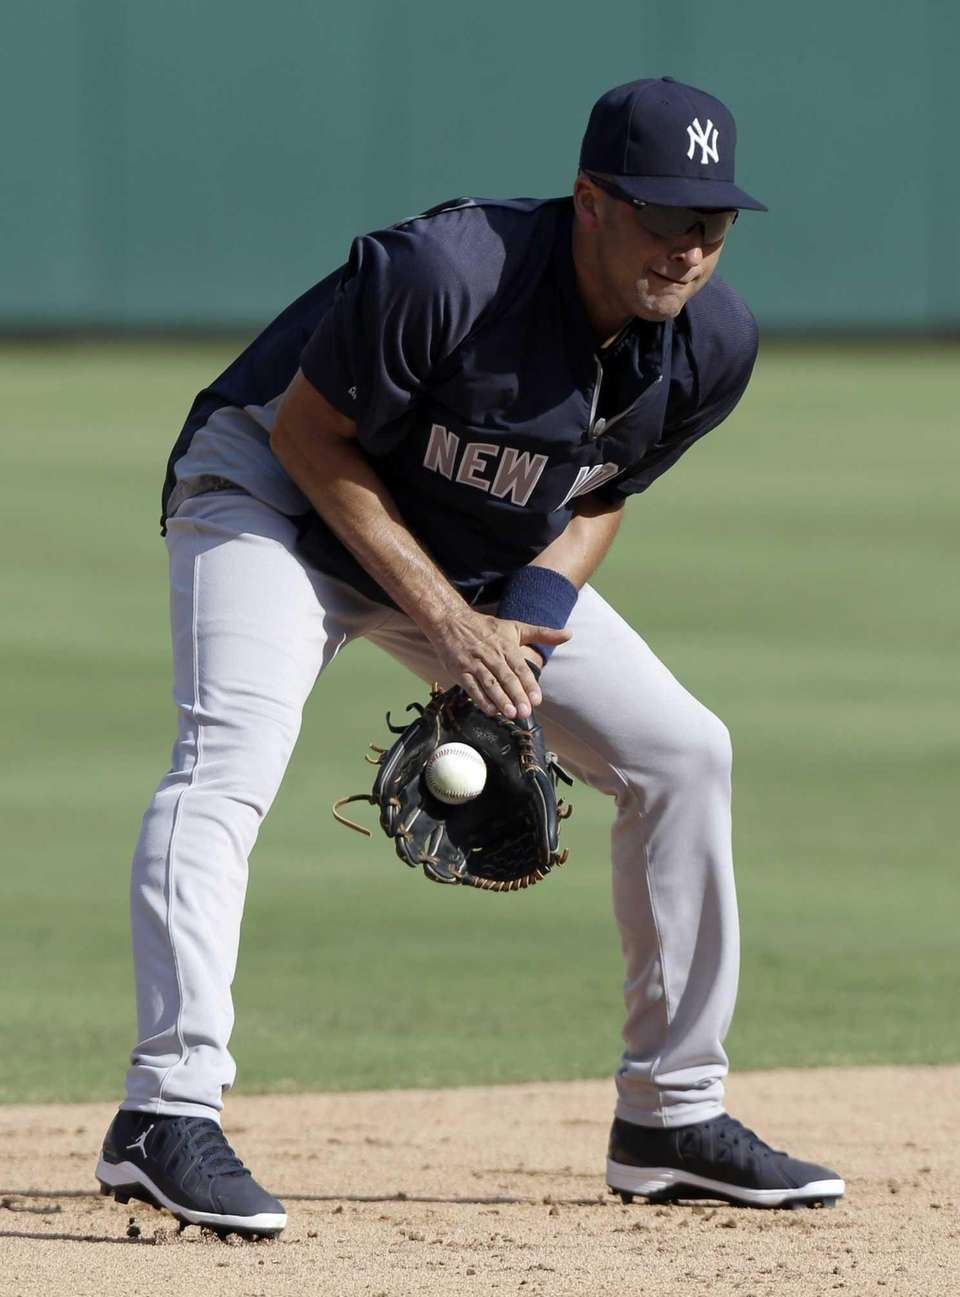 New York Yankees shortstop Derek Jeter fields grounders